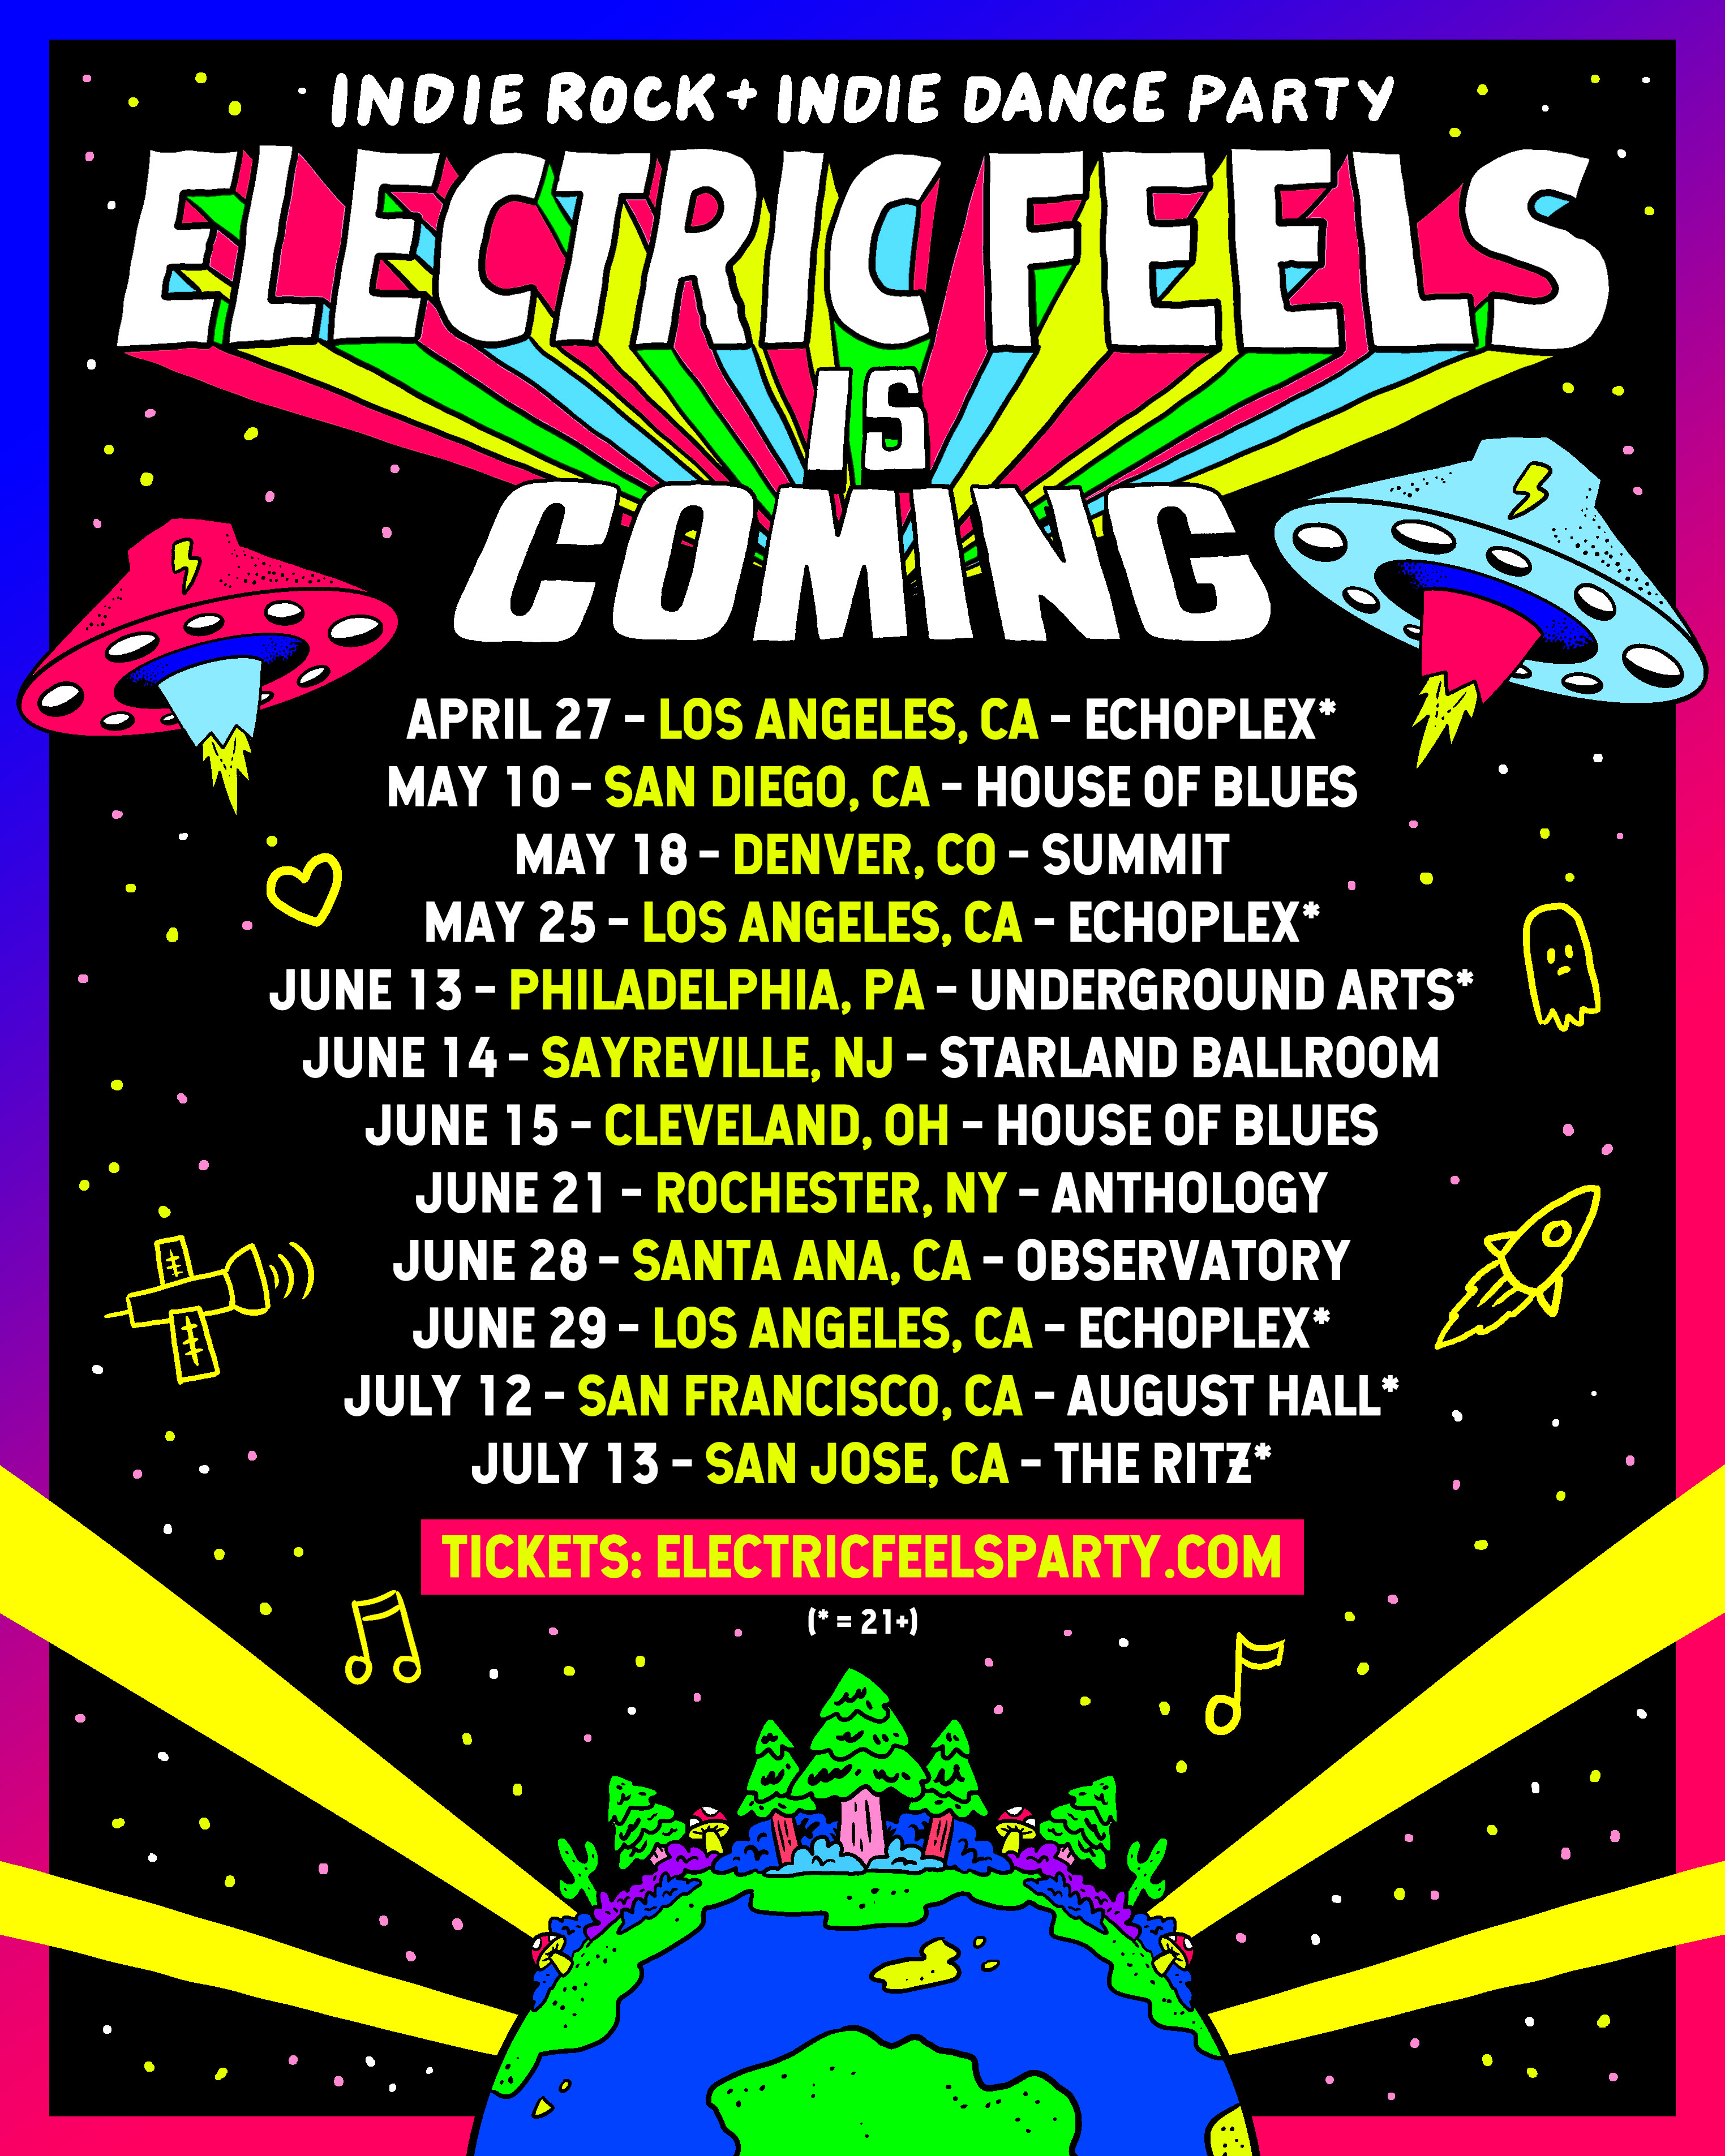 Electric Feels next party